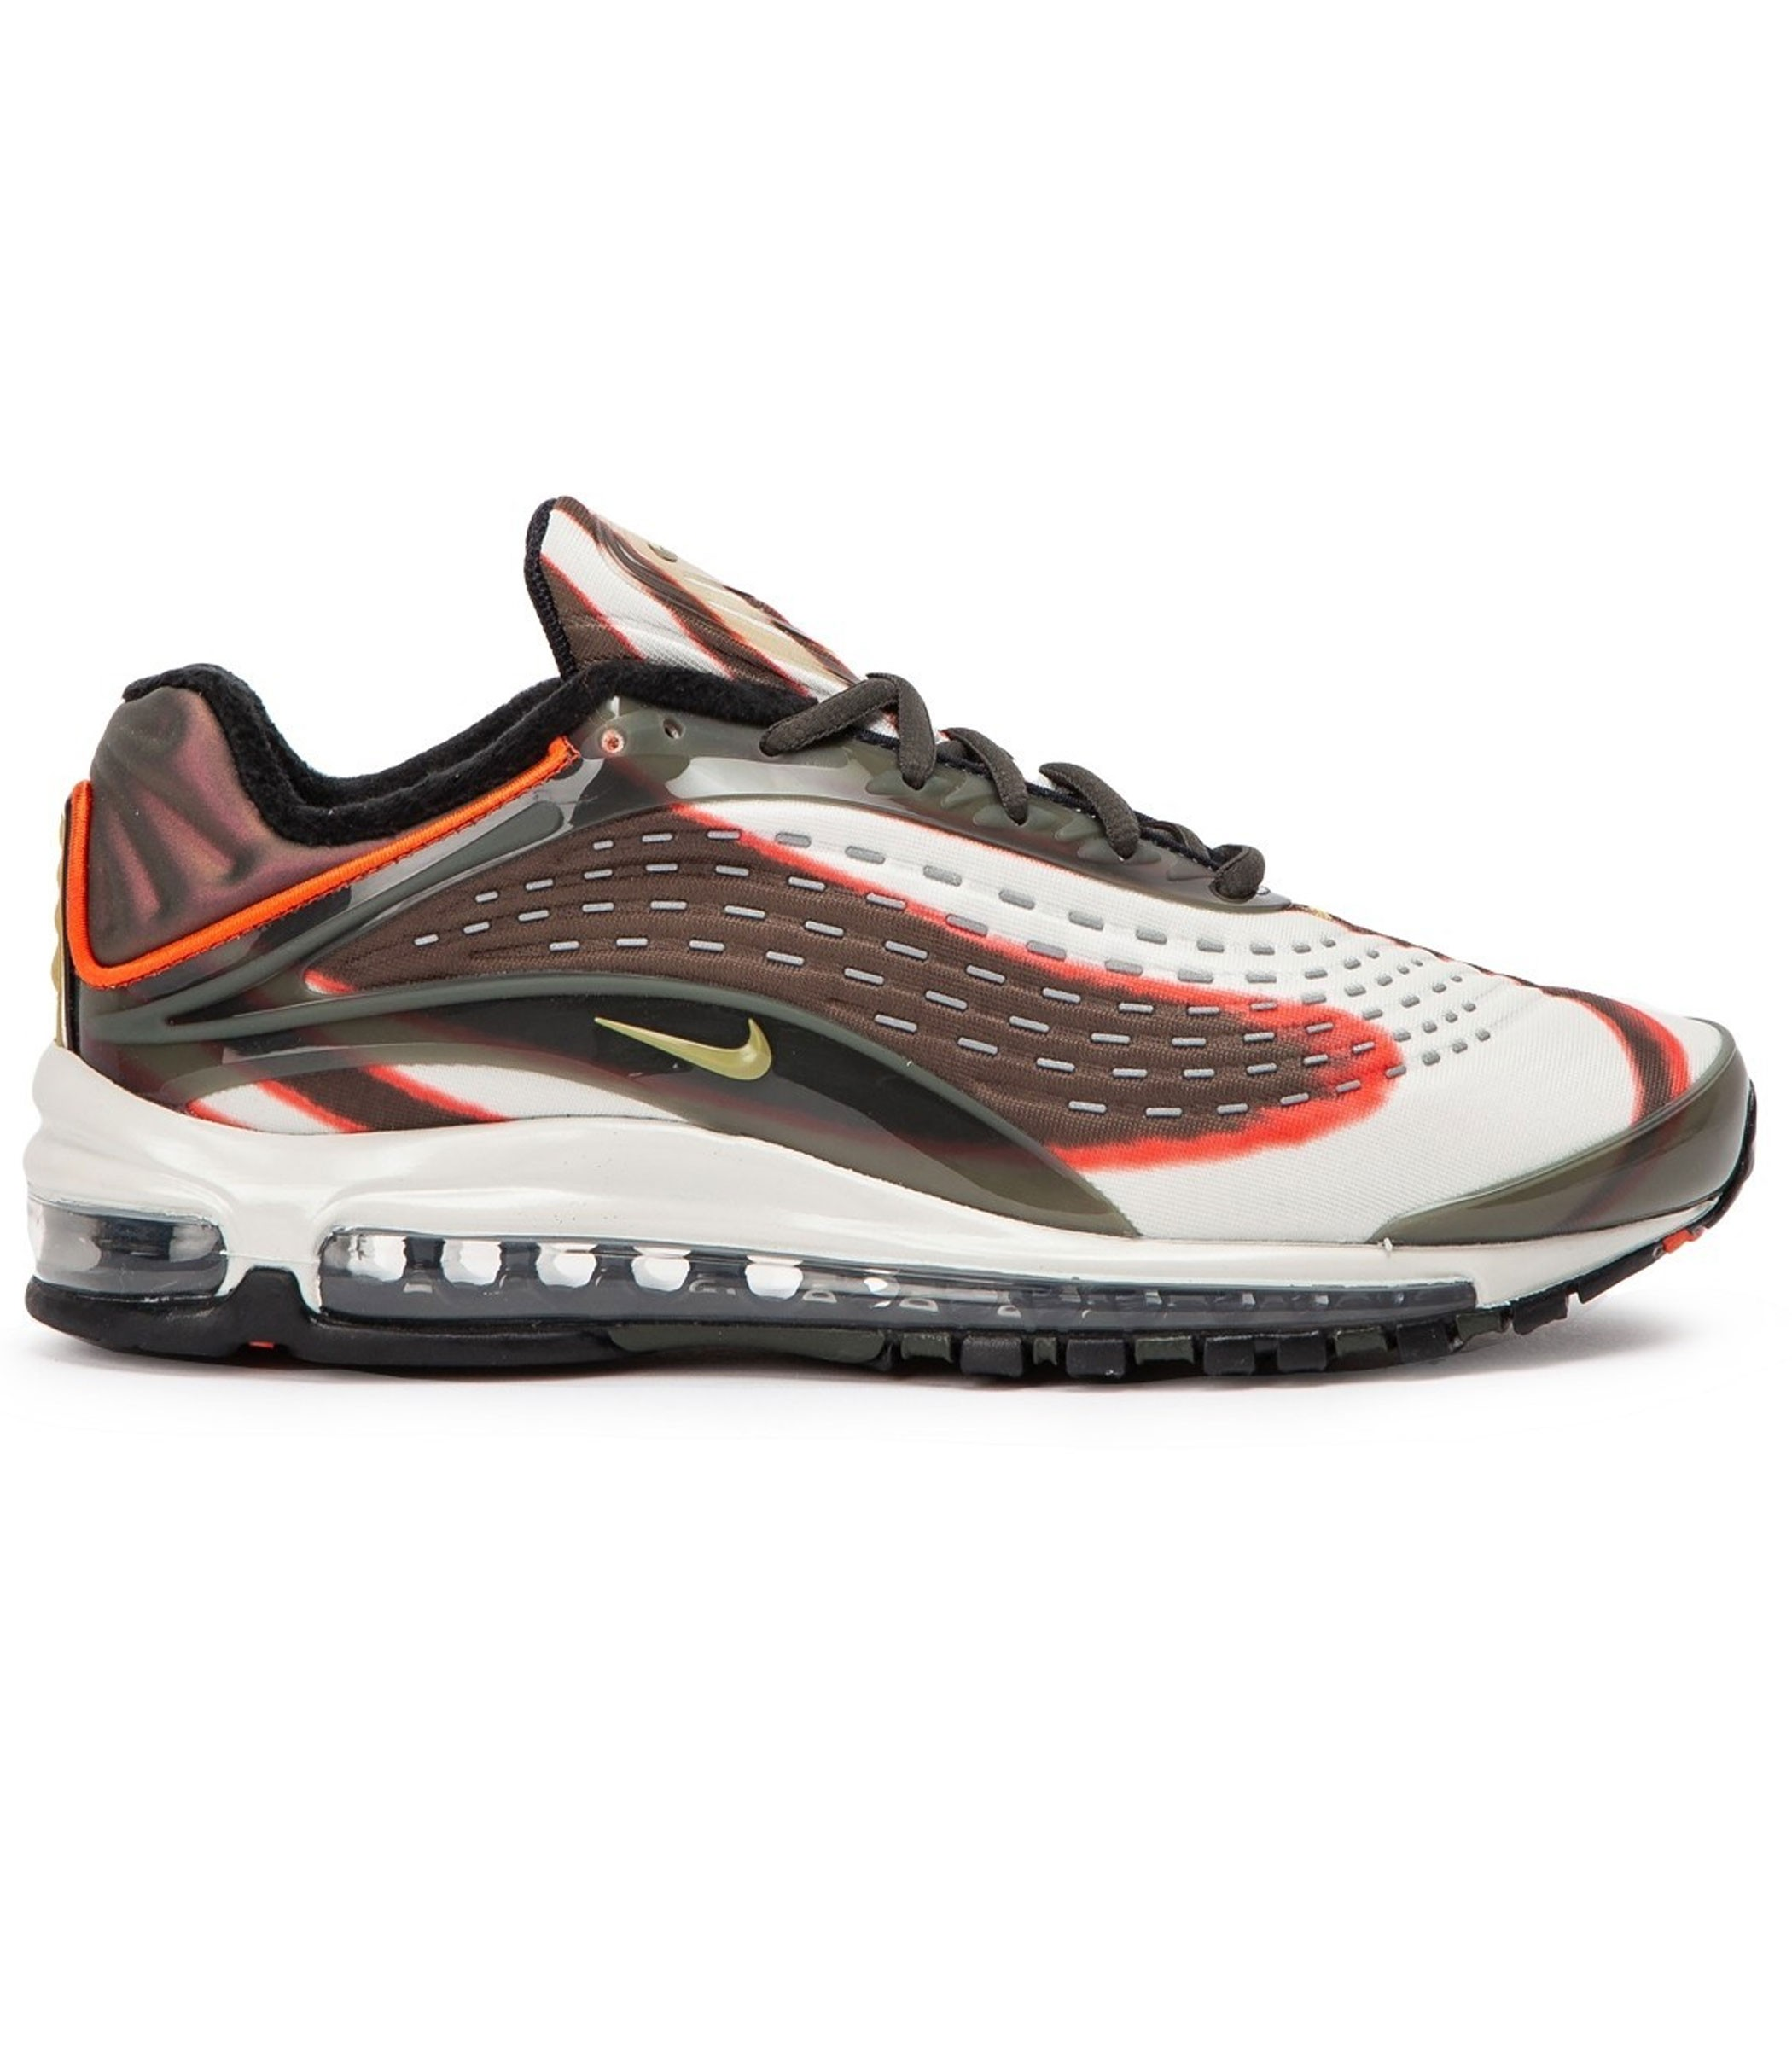 on sale 4aec7 eecb3 Scarpe Sneakers Nike Air Max Deluxe da uomo rif. AJ7831 300